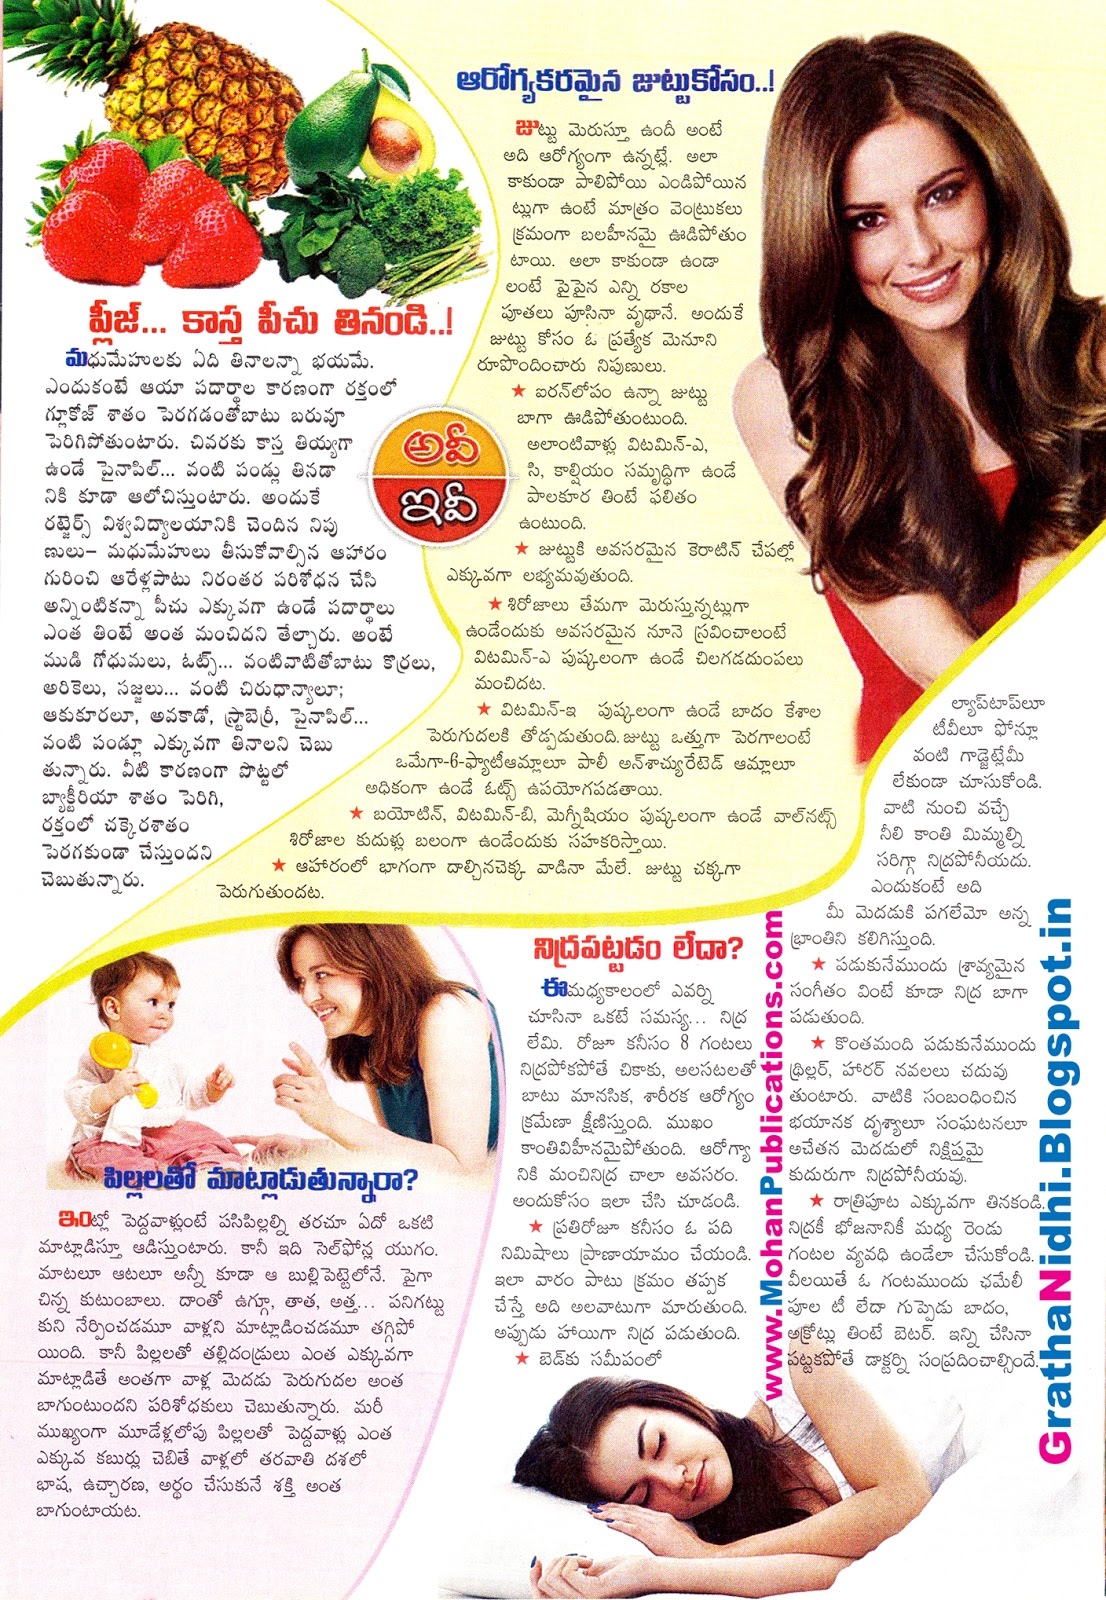 అవీ ఇవీ LifeHacks Fiber Food Food in Fiber Fiber content in food Hari Care Lovely Hair Hari Styles Sleeping Sleeping Disorder Talking with Children Children Care Chidrens Care Eenadu Sunday Eenadu Sunday Magazine Eenadu Sunday Magazine Cover Story Bhakthi Pustakalu Bhakti Pustakalu BhakthiPustakalu BhaktiPustakalu